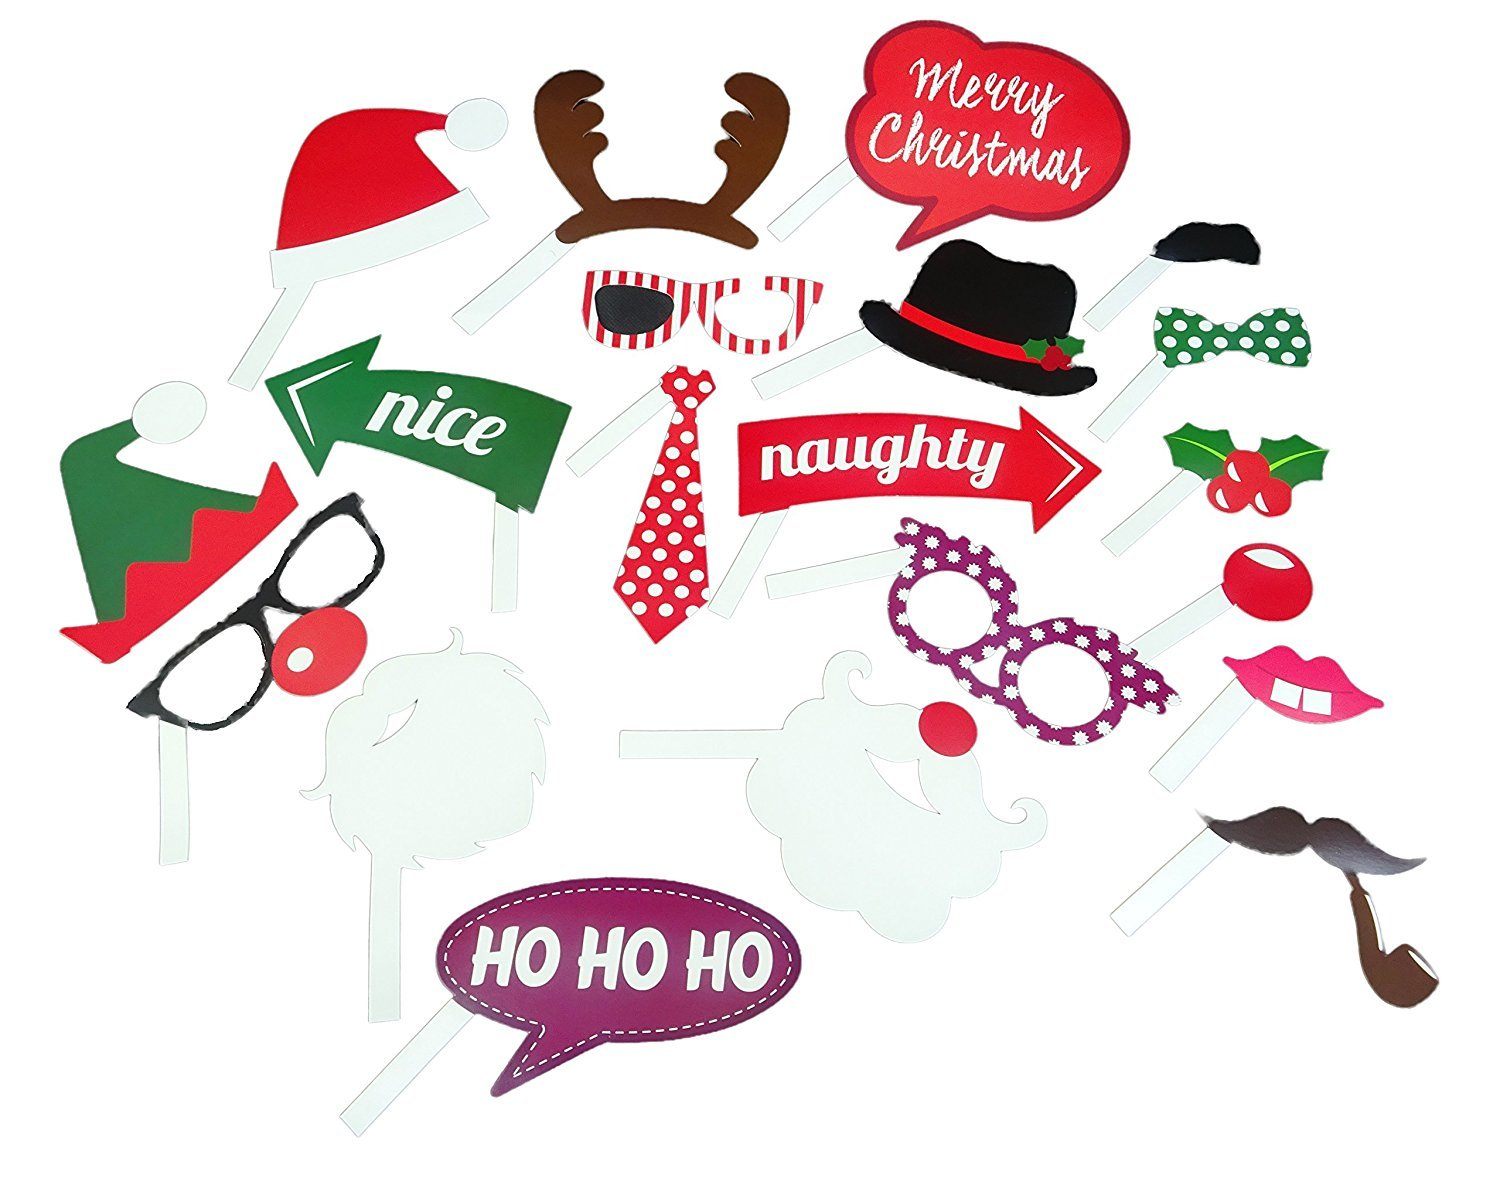 Pack Of 6 Fun Family Small Christmas Party Crackers Face Xmas Photo Props